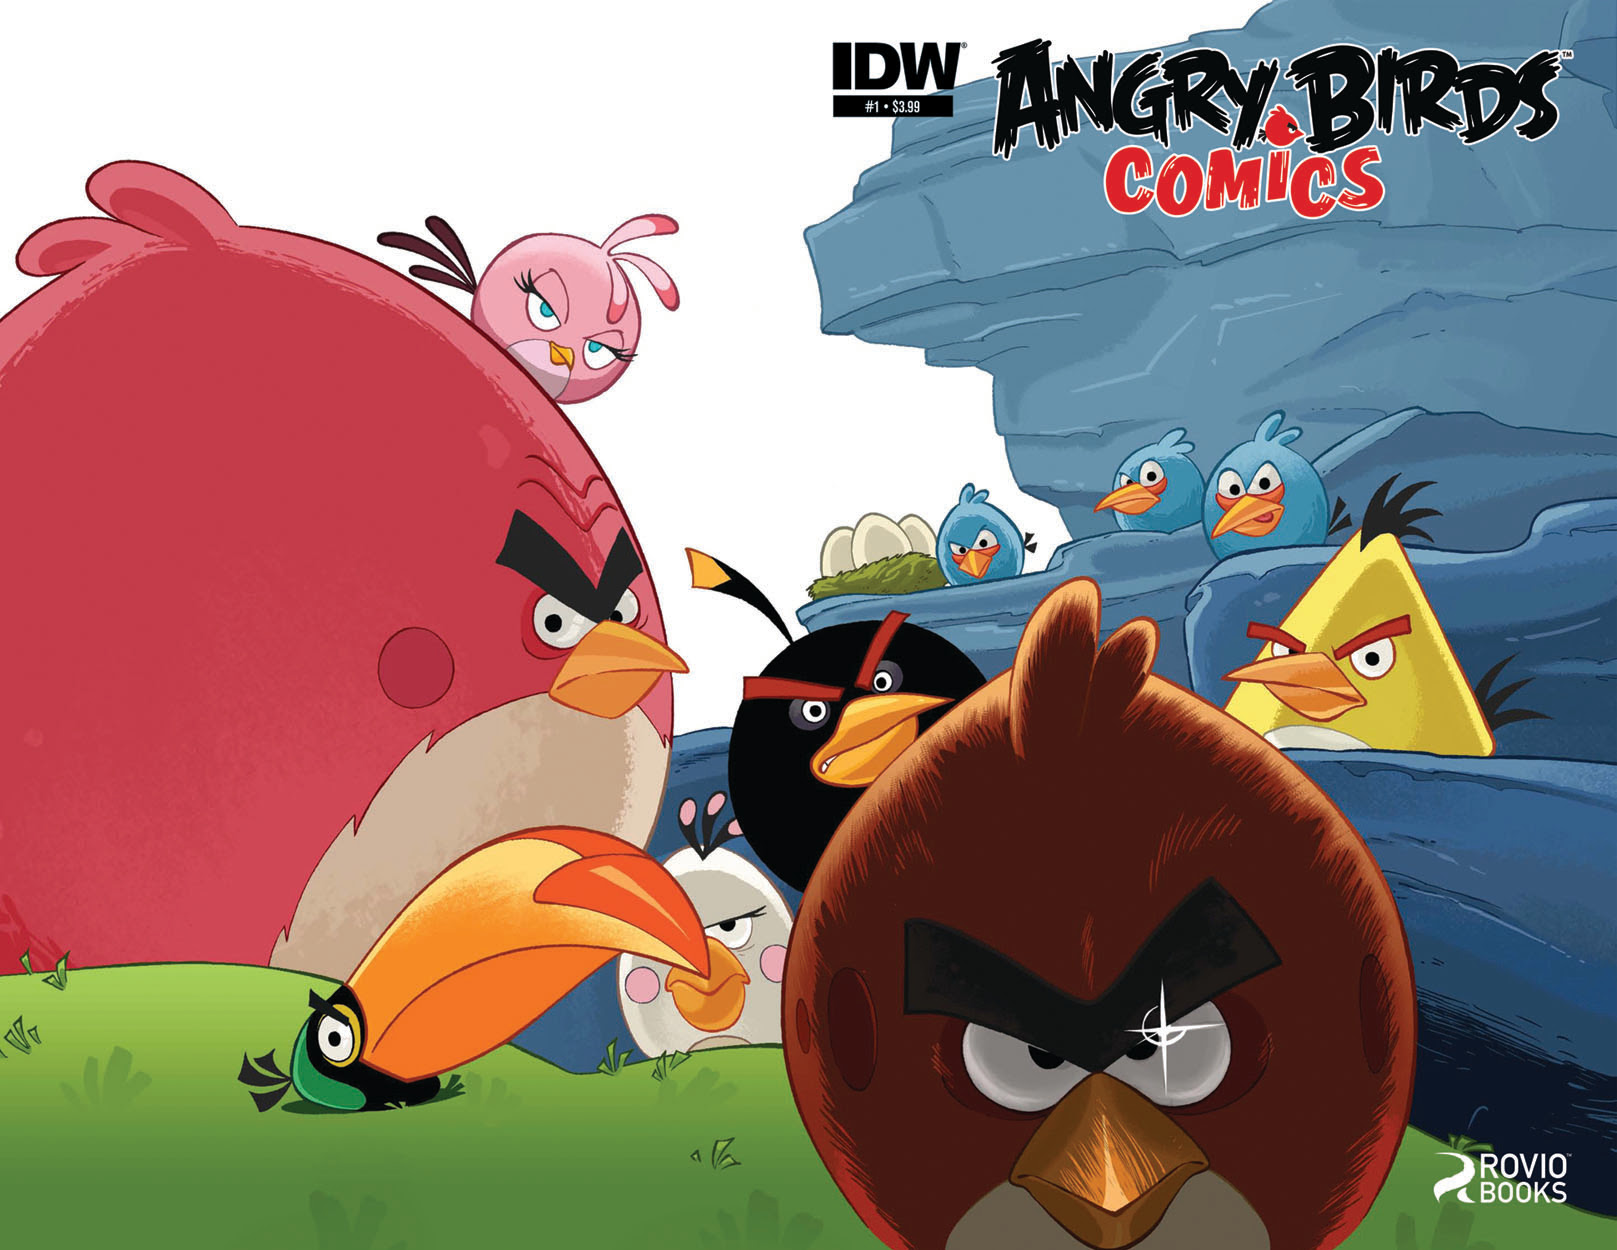 Angry Birds Launches From IDW